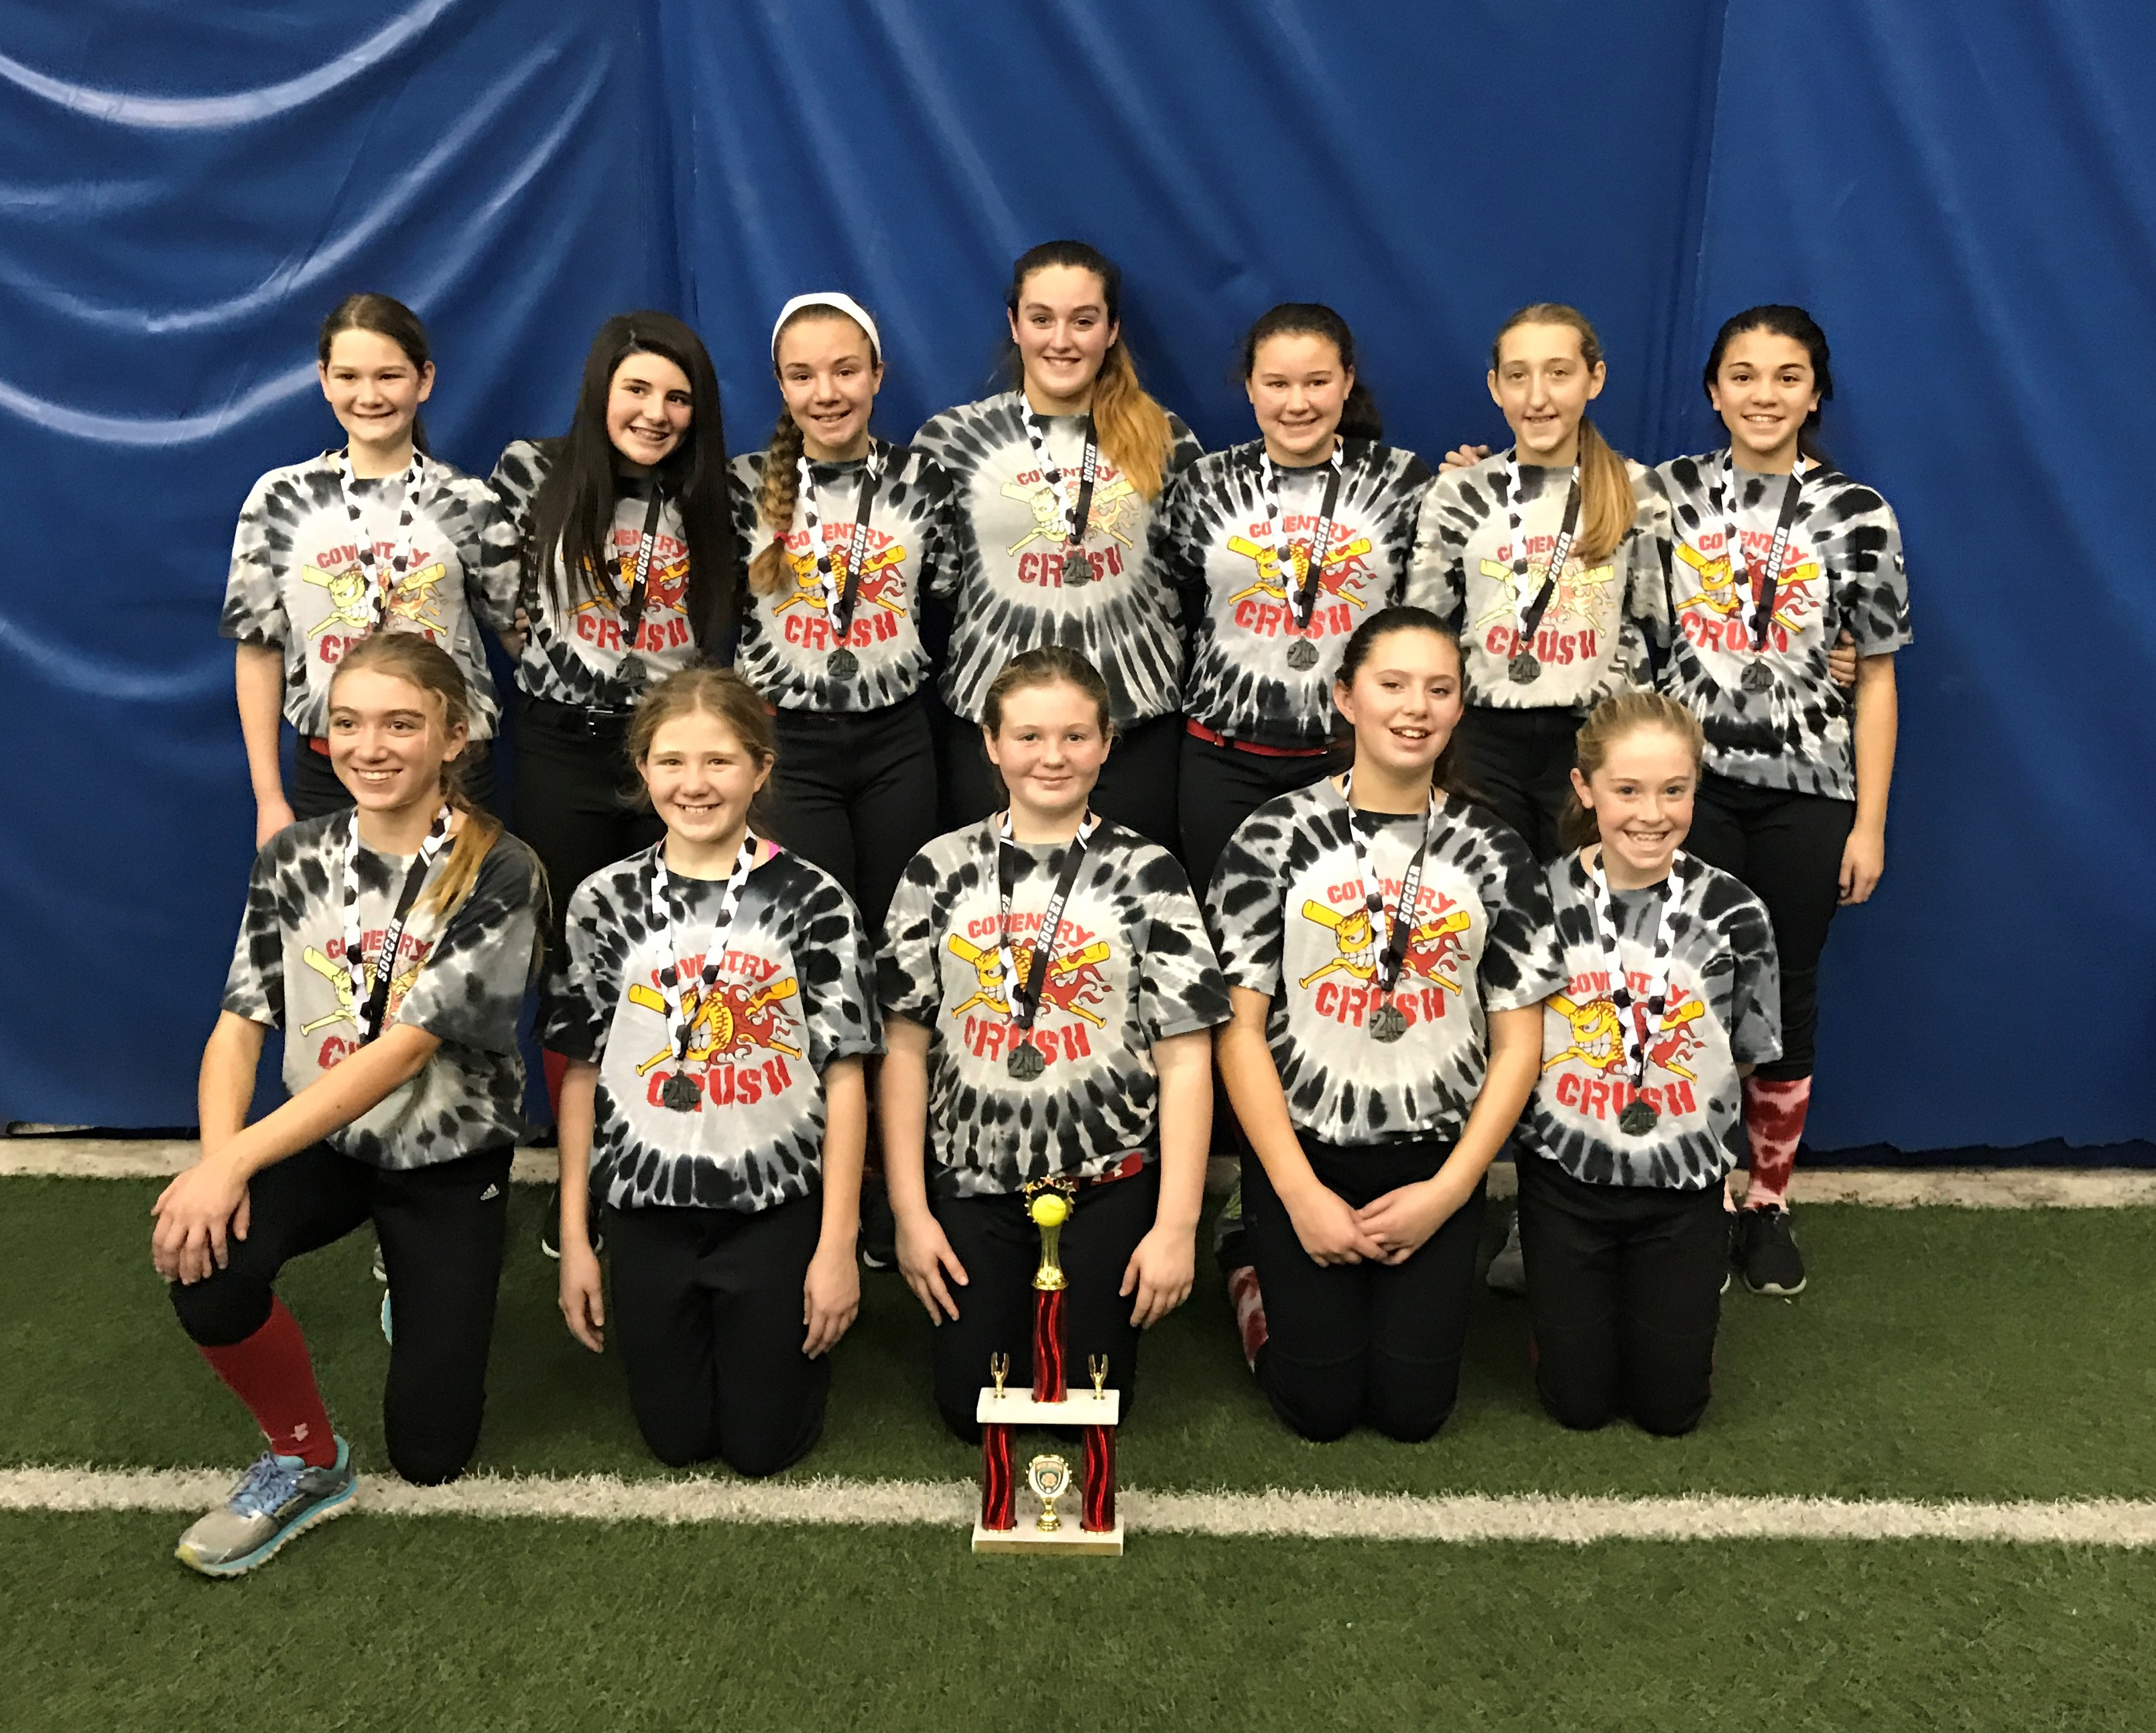 Coventry Crush 12U Red Advances to Finals of WWIS Holiday Tournament